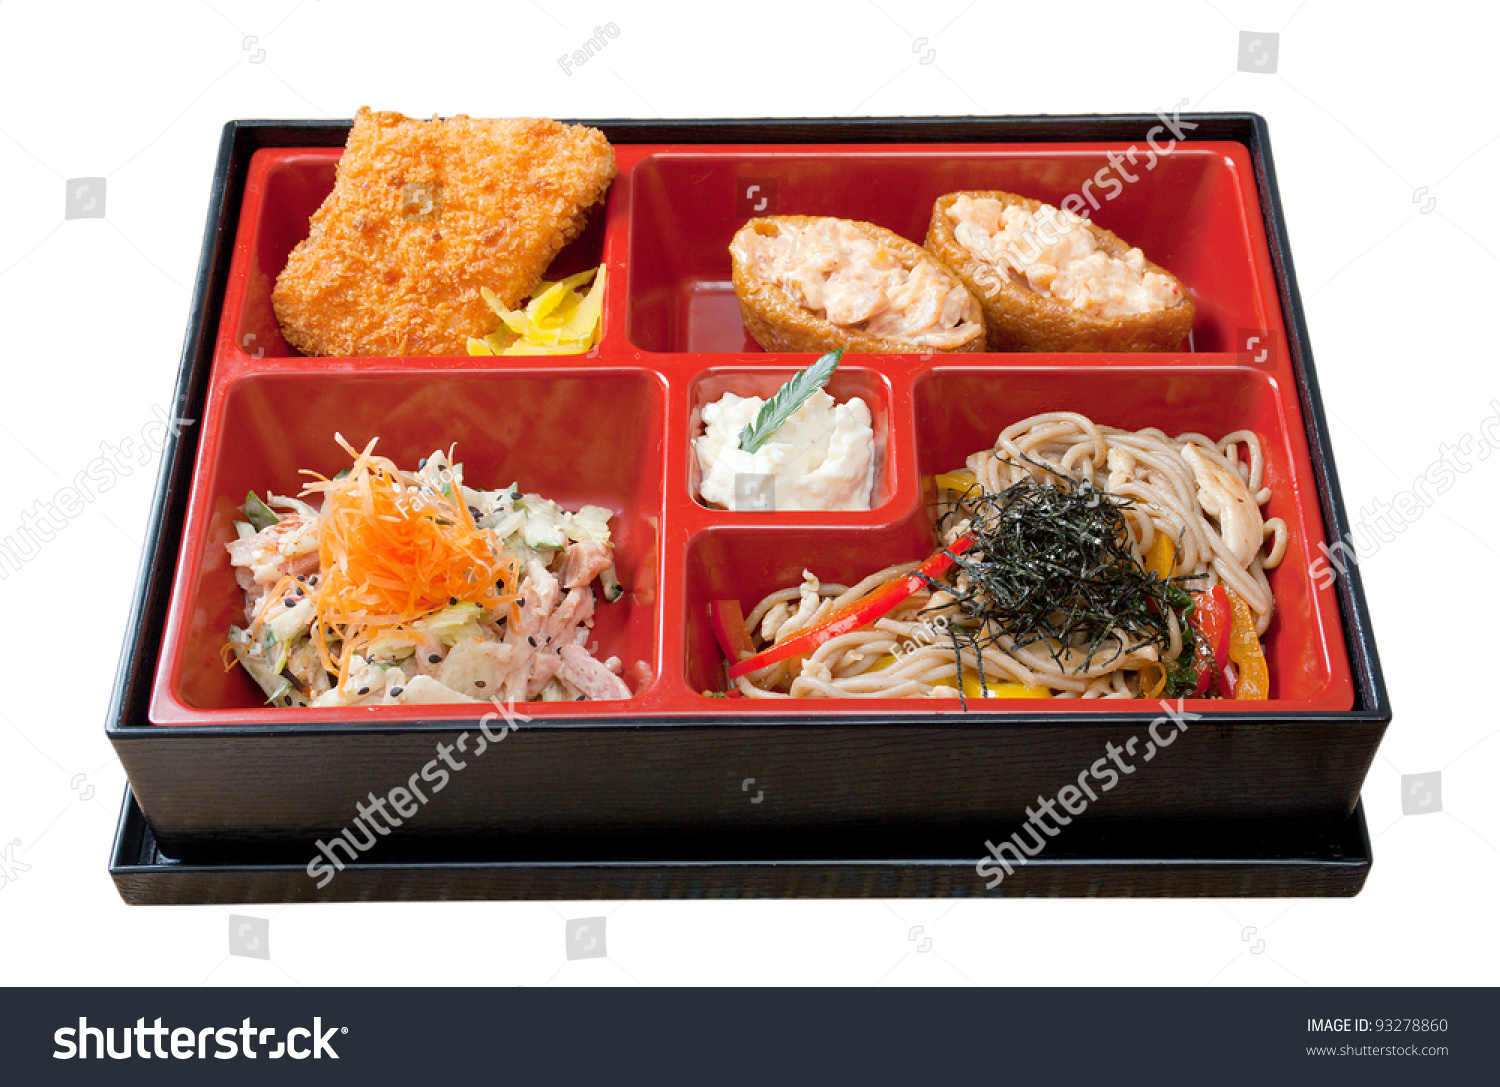 japanese bento lunch box of fast food stock photo 93278860 shutterstock. Black Bedroom Furniture Sets. Home Design Ideas